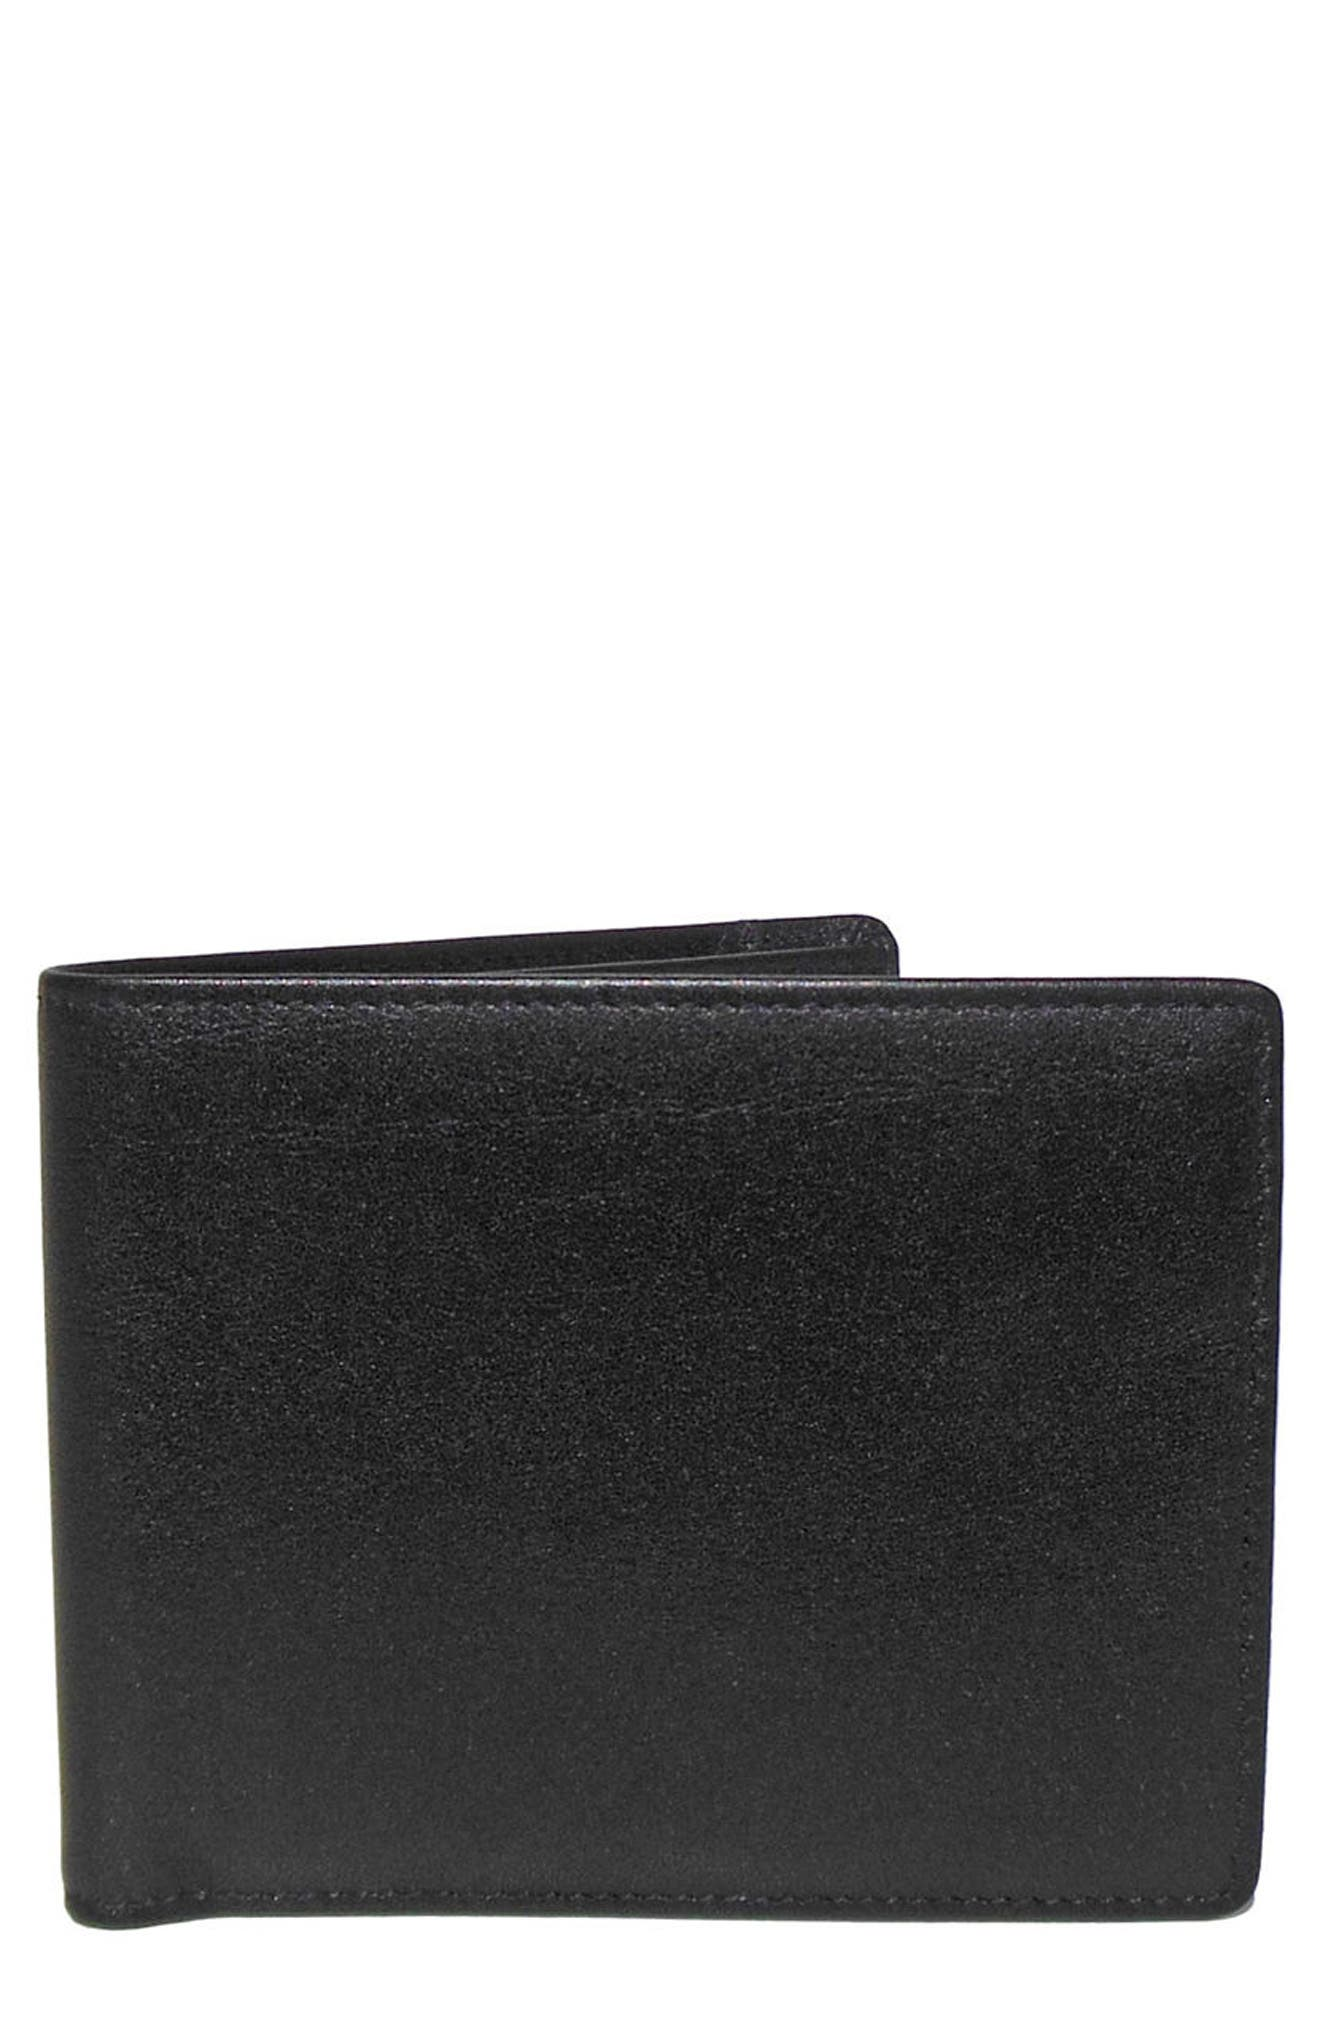 Grant Leather Wallet,                         Main,                         color, 001